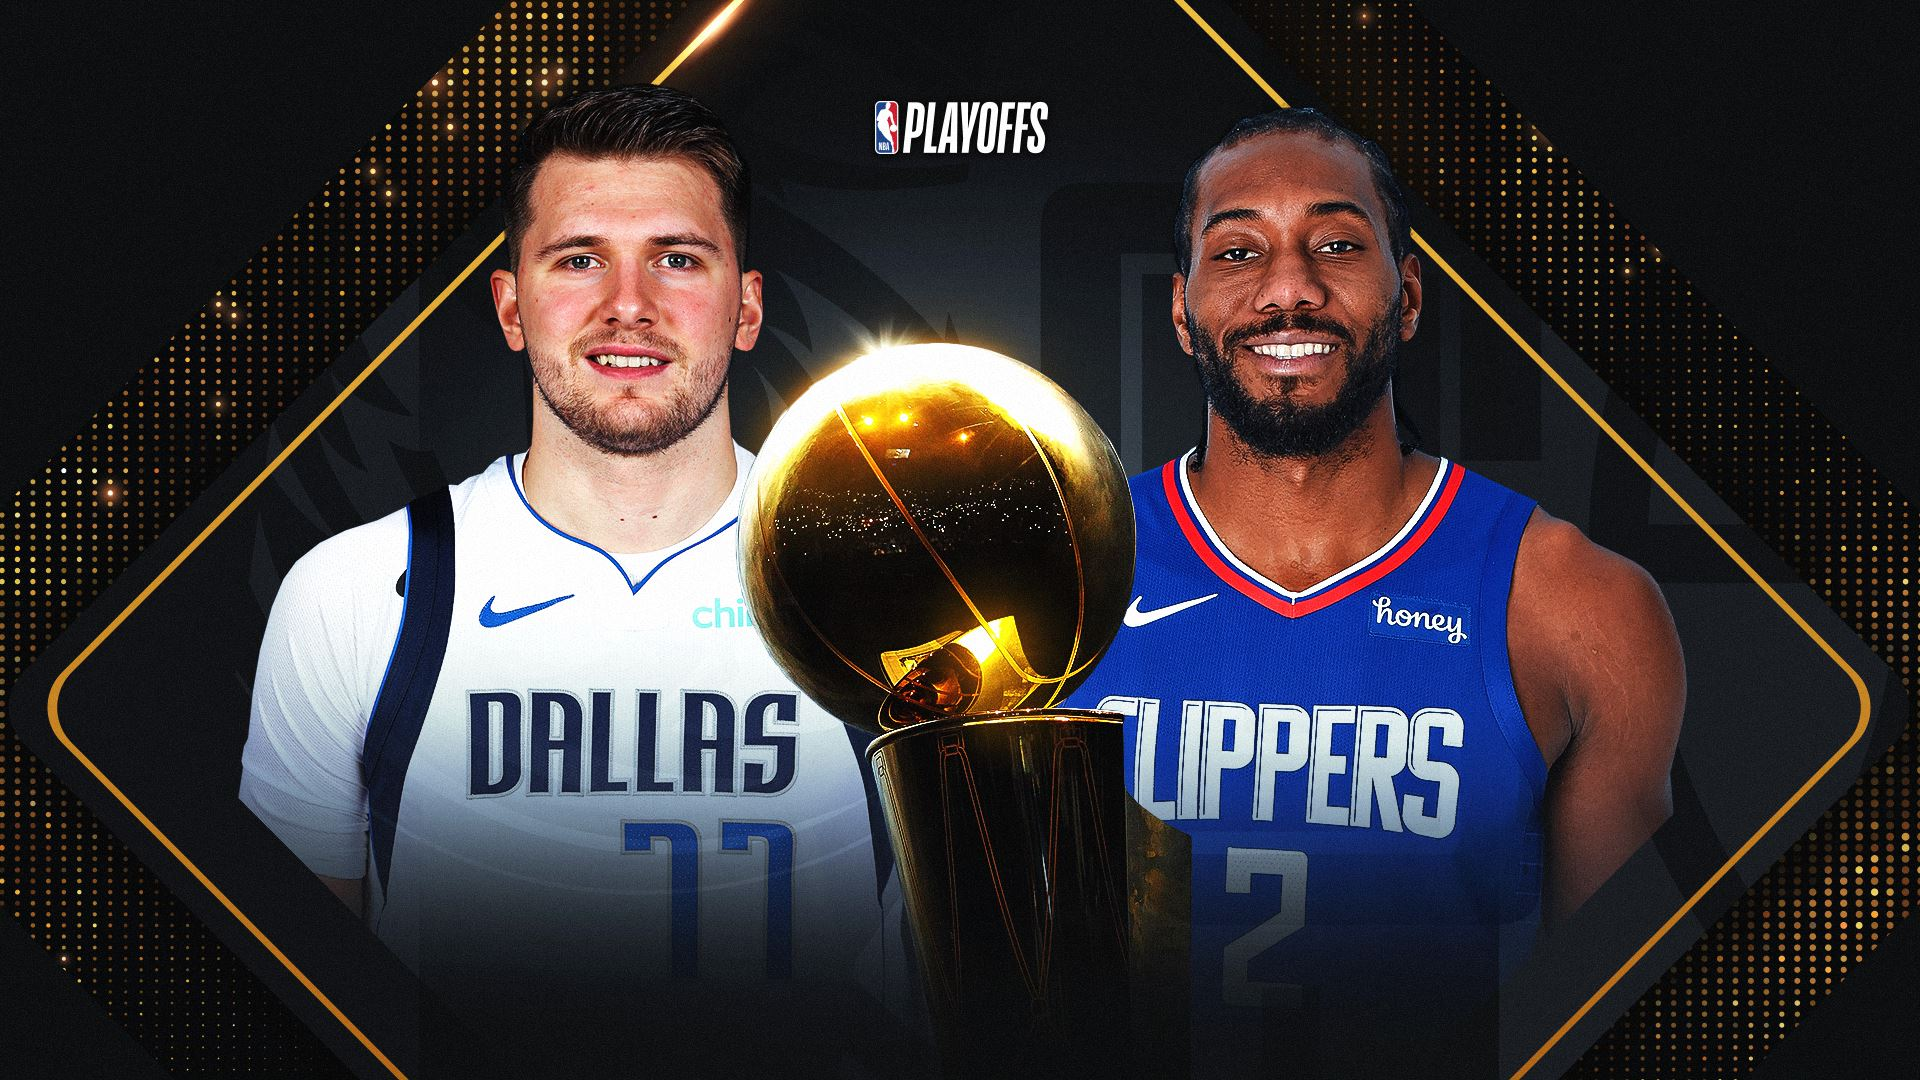 Series preview: Expect more fireworks as Clippers, Mavs run it back